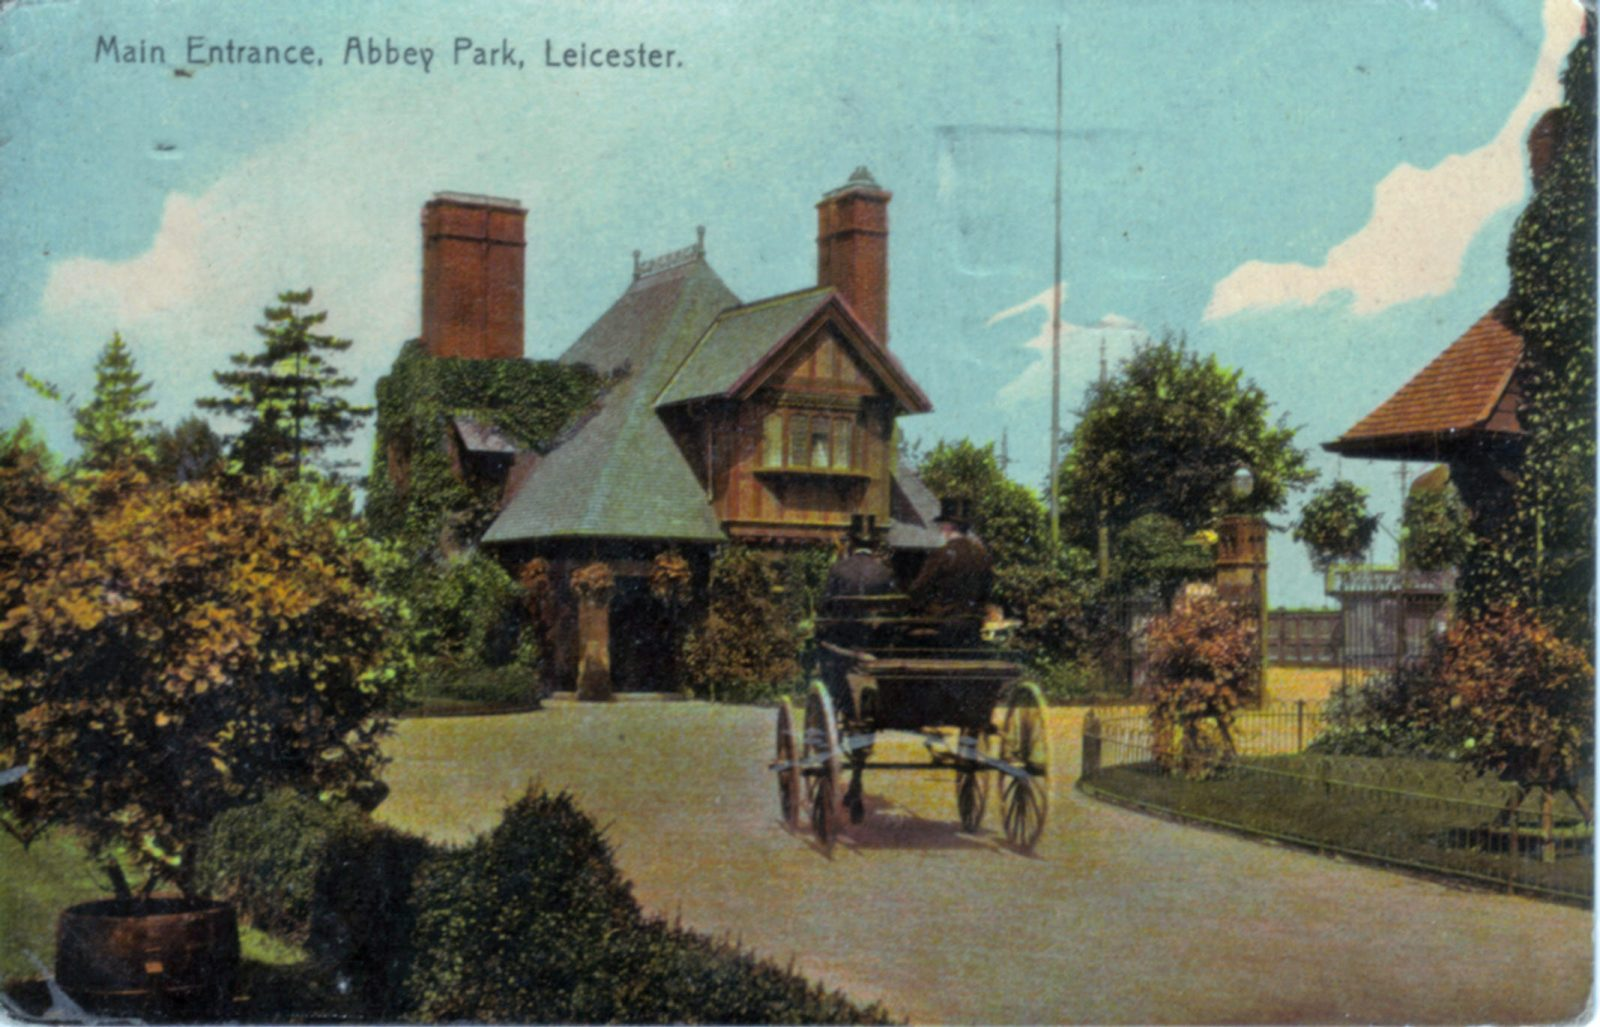 Abbey Park, Leicester. 1901-1920: Main Entrance with a pony and trap. Posted 1918-21 (File:1204)